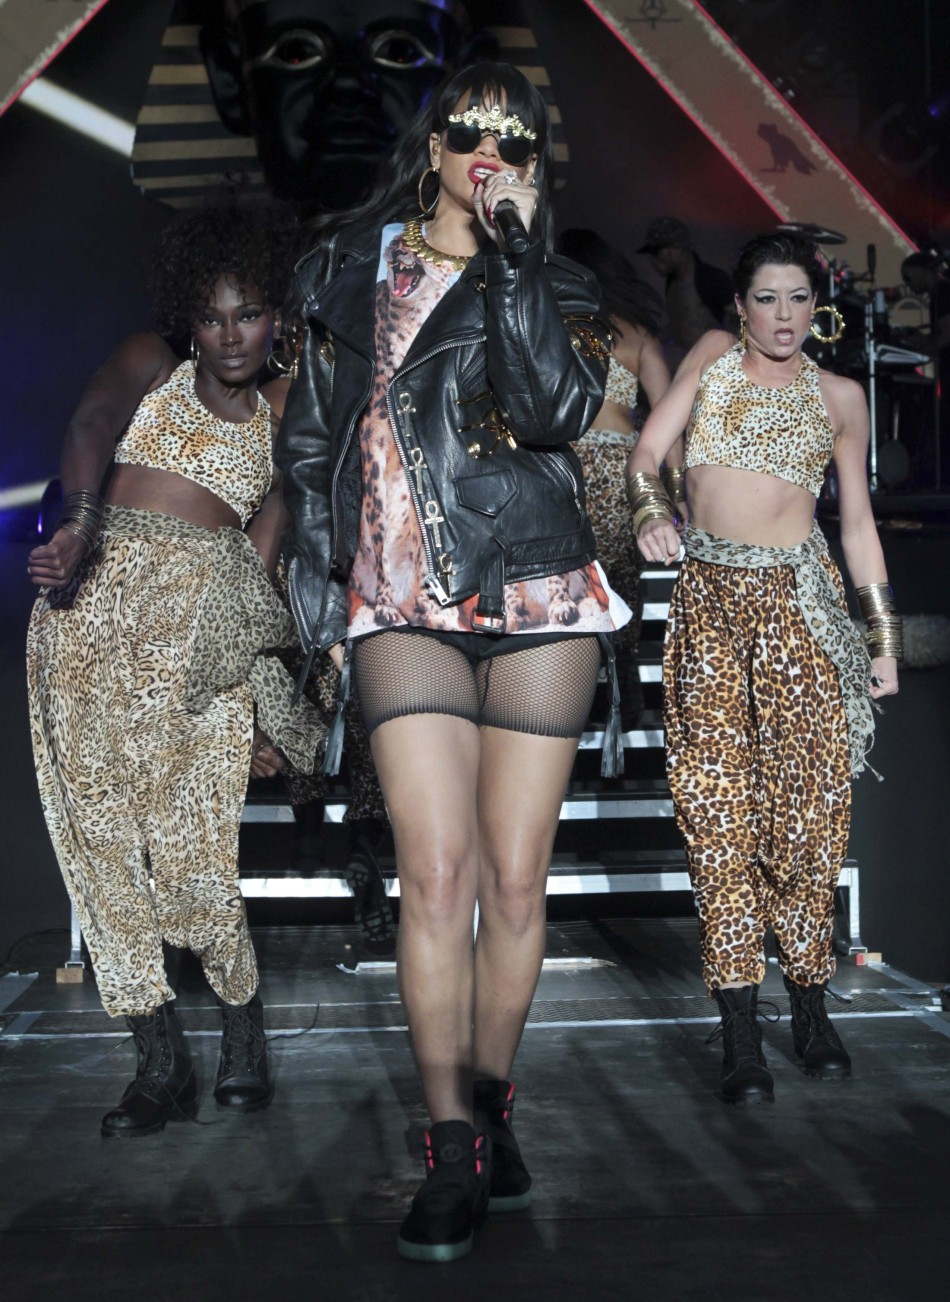 Rihanna performs at the Hackney Weekender festival at Hackney Marshes in east London